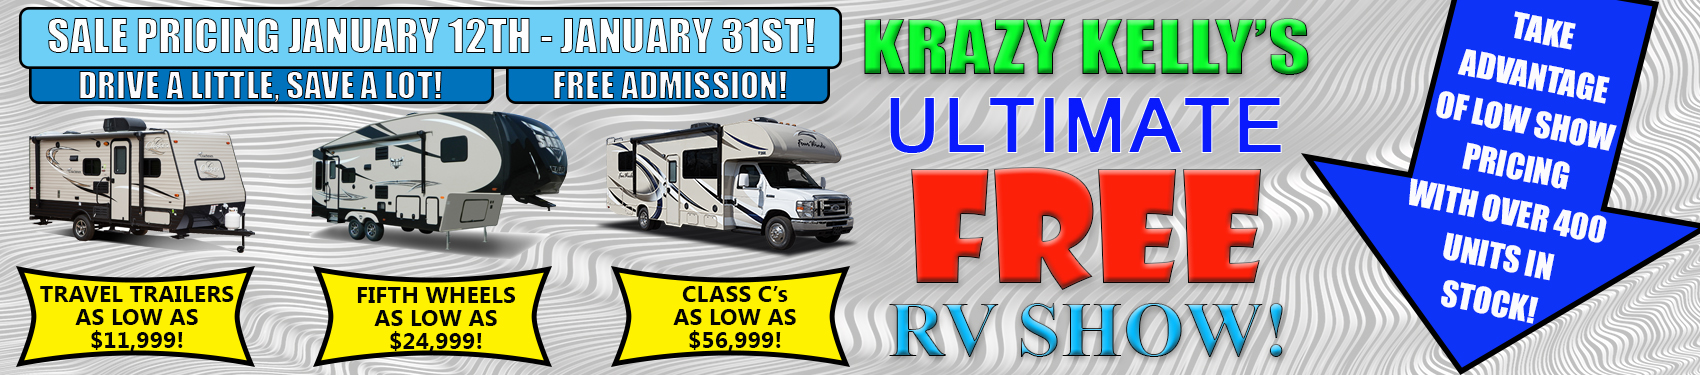 Beckley's Camping Center - FREE RV SHOW